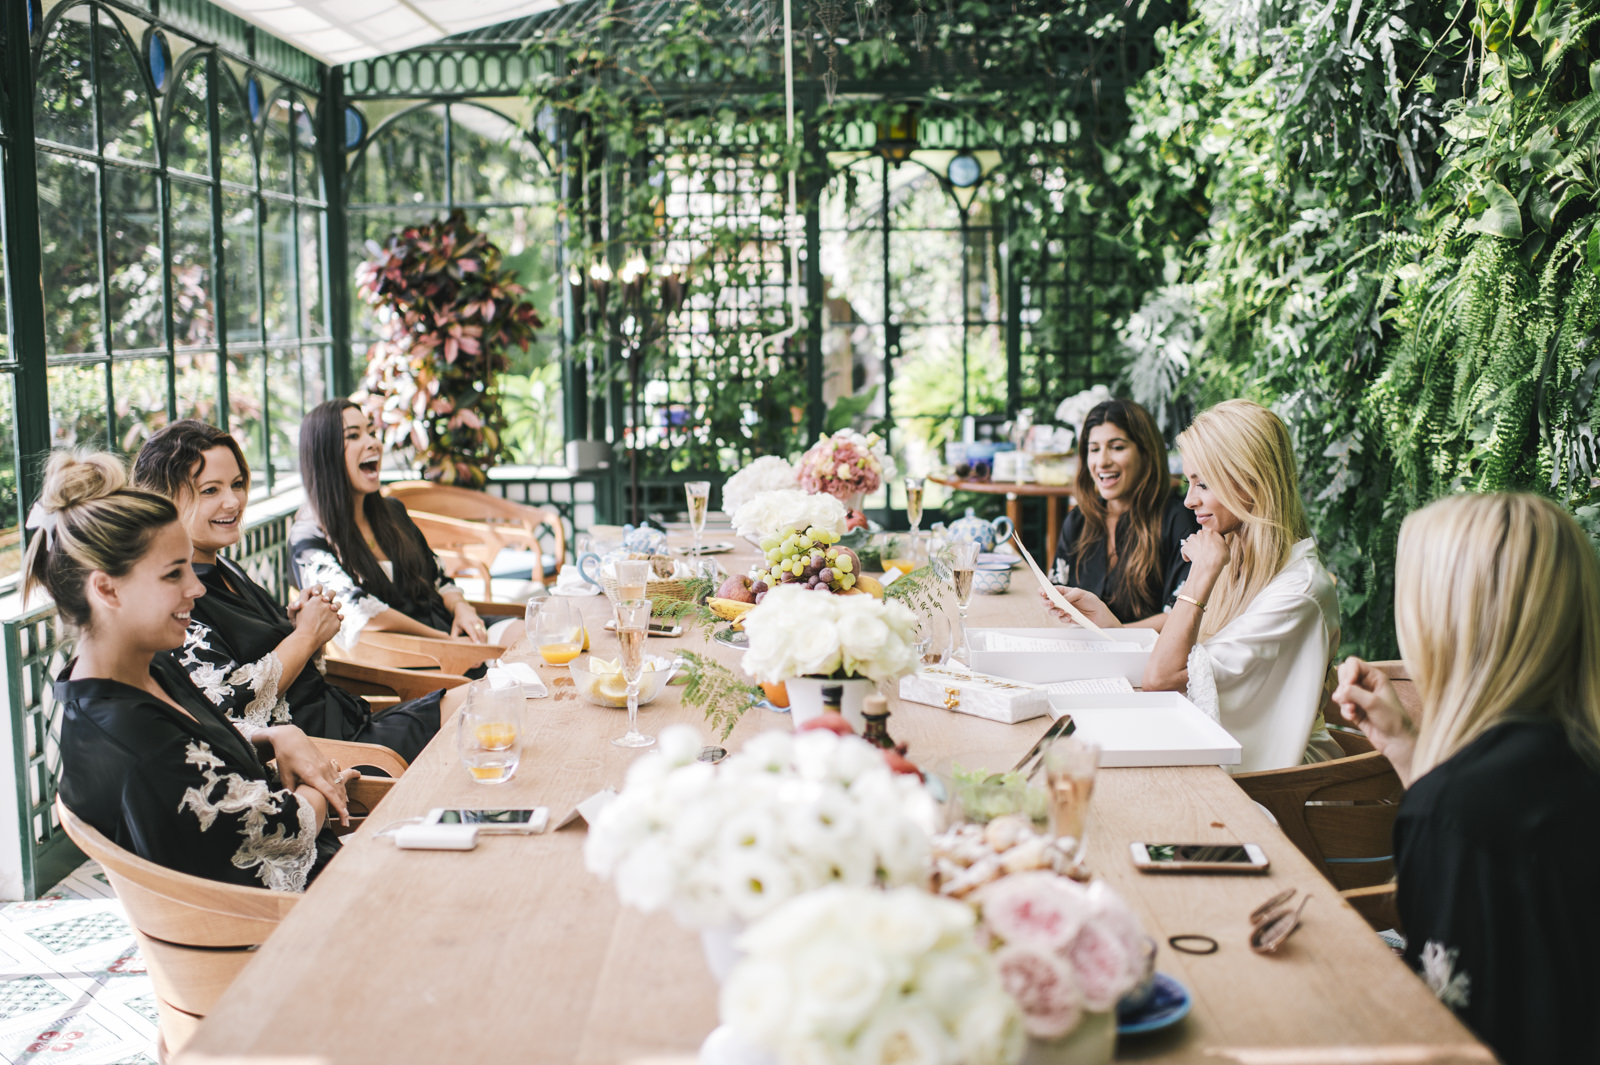 the bride having brunch with the bridesmaids